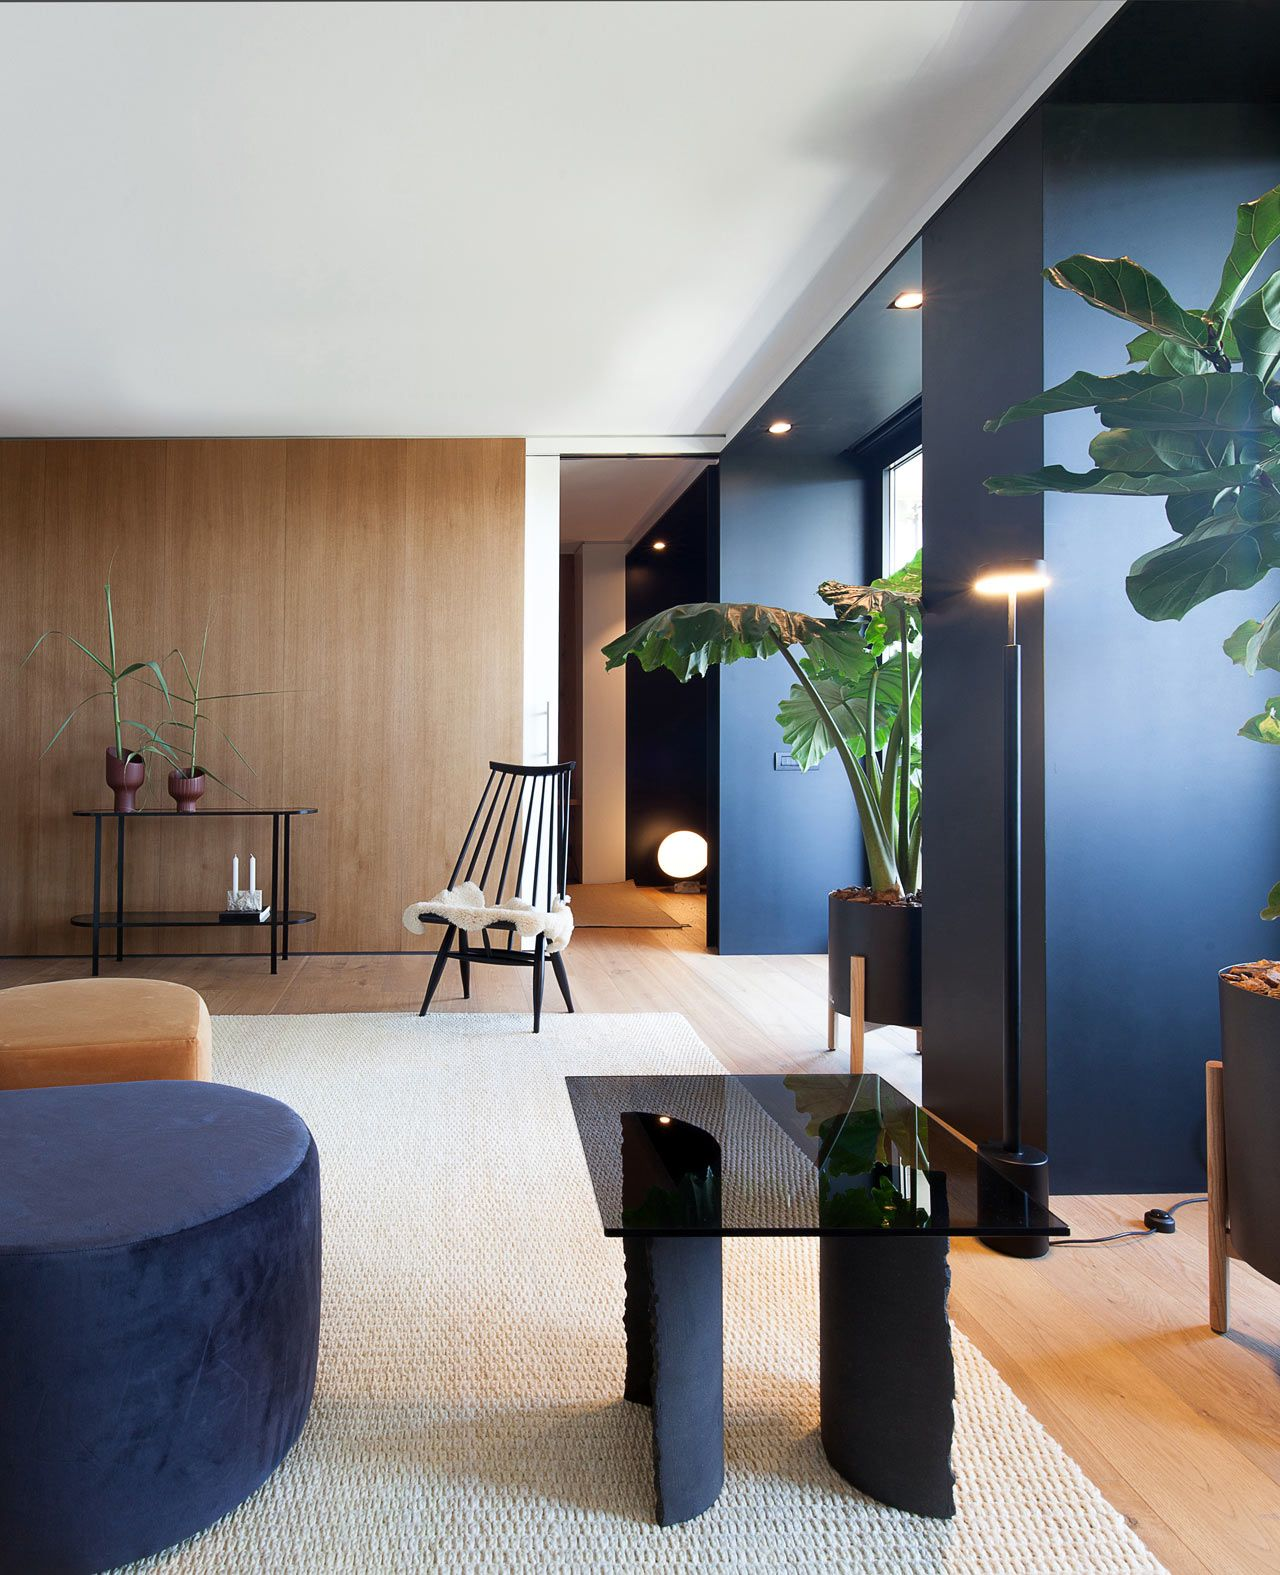 2 Bedroom Apartment Near Me Rent: A Barcelona Apartment Goes From Two Bedrooms To One